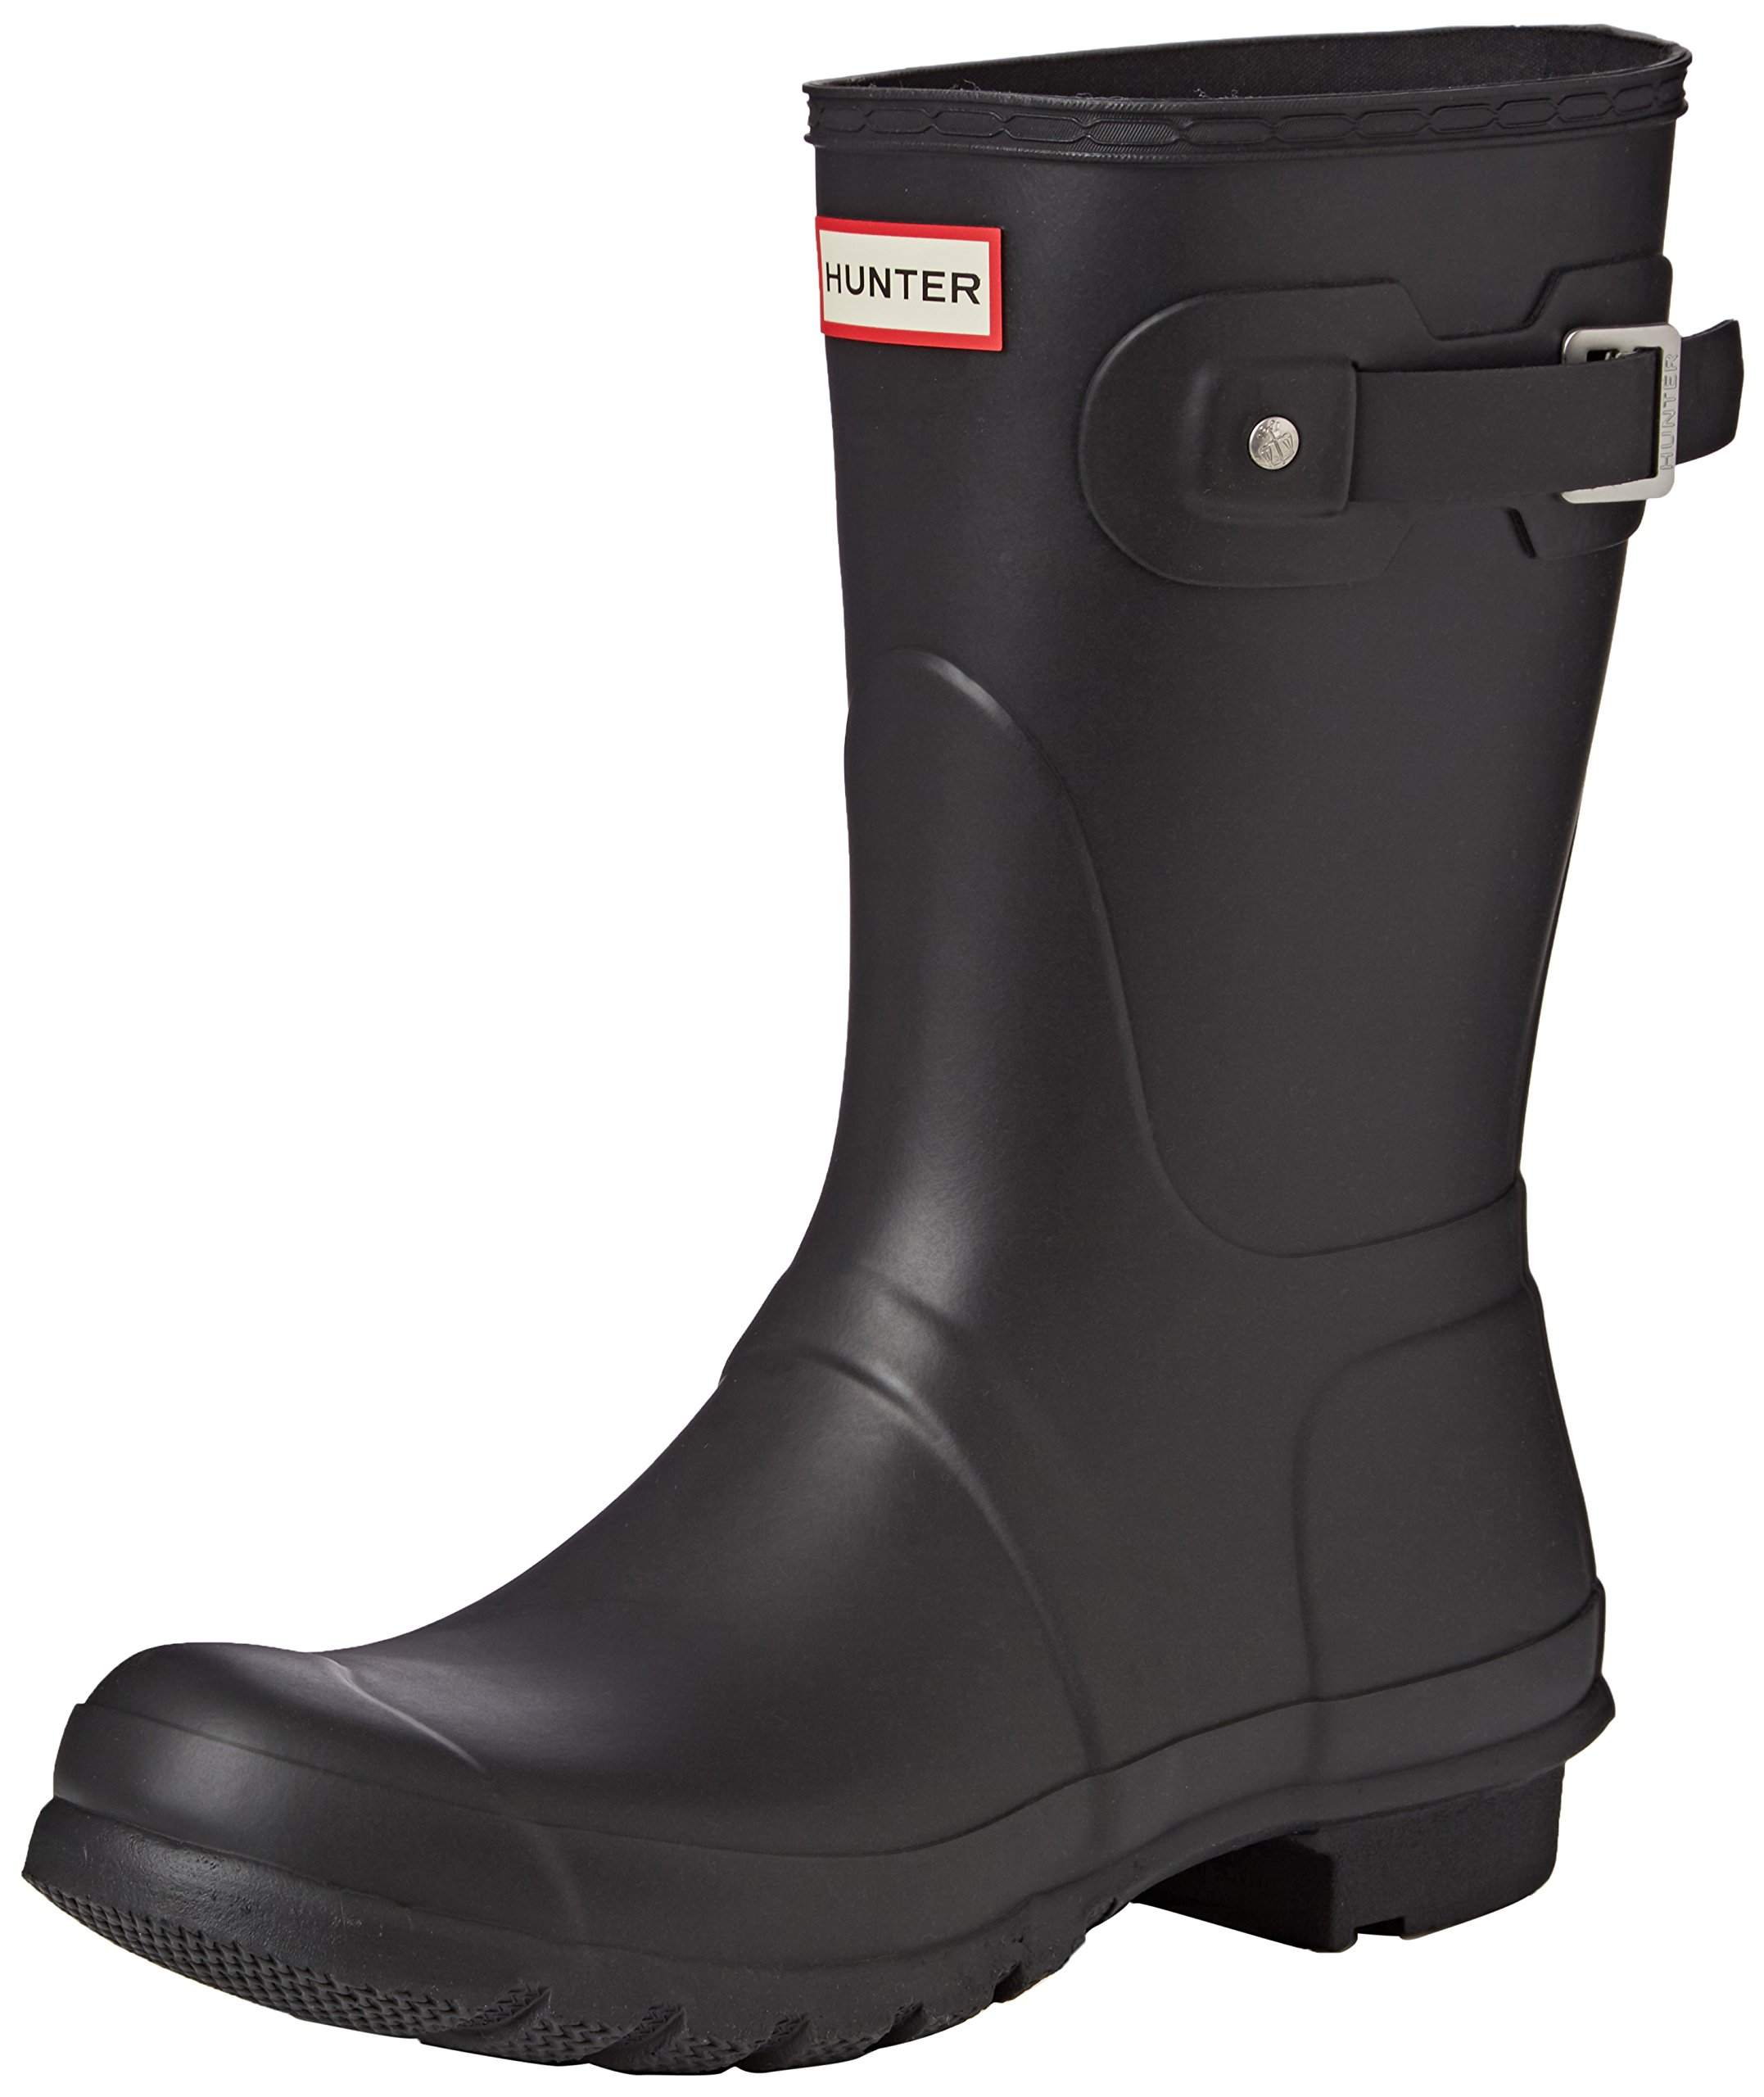 cc65c6fd Best Rated in Women's Boots & Helpful Customer Reviews - Amazon.com